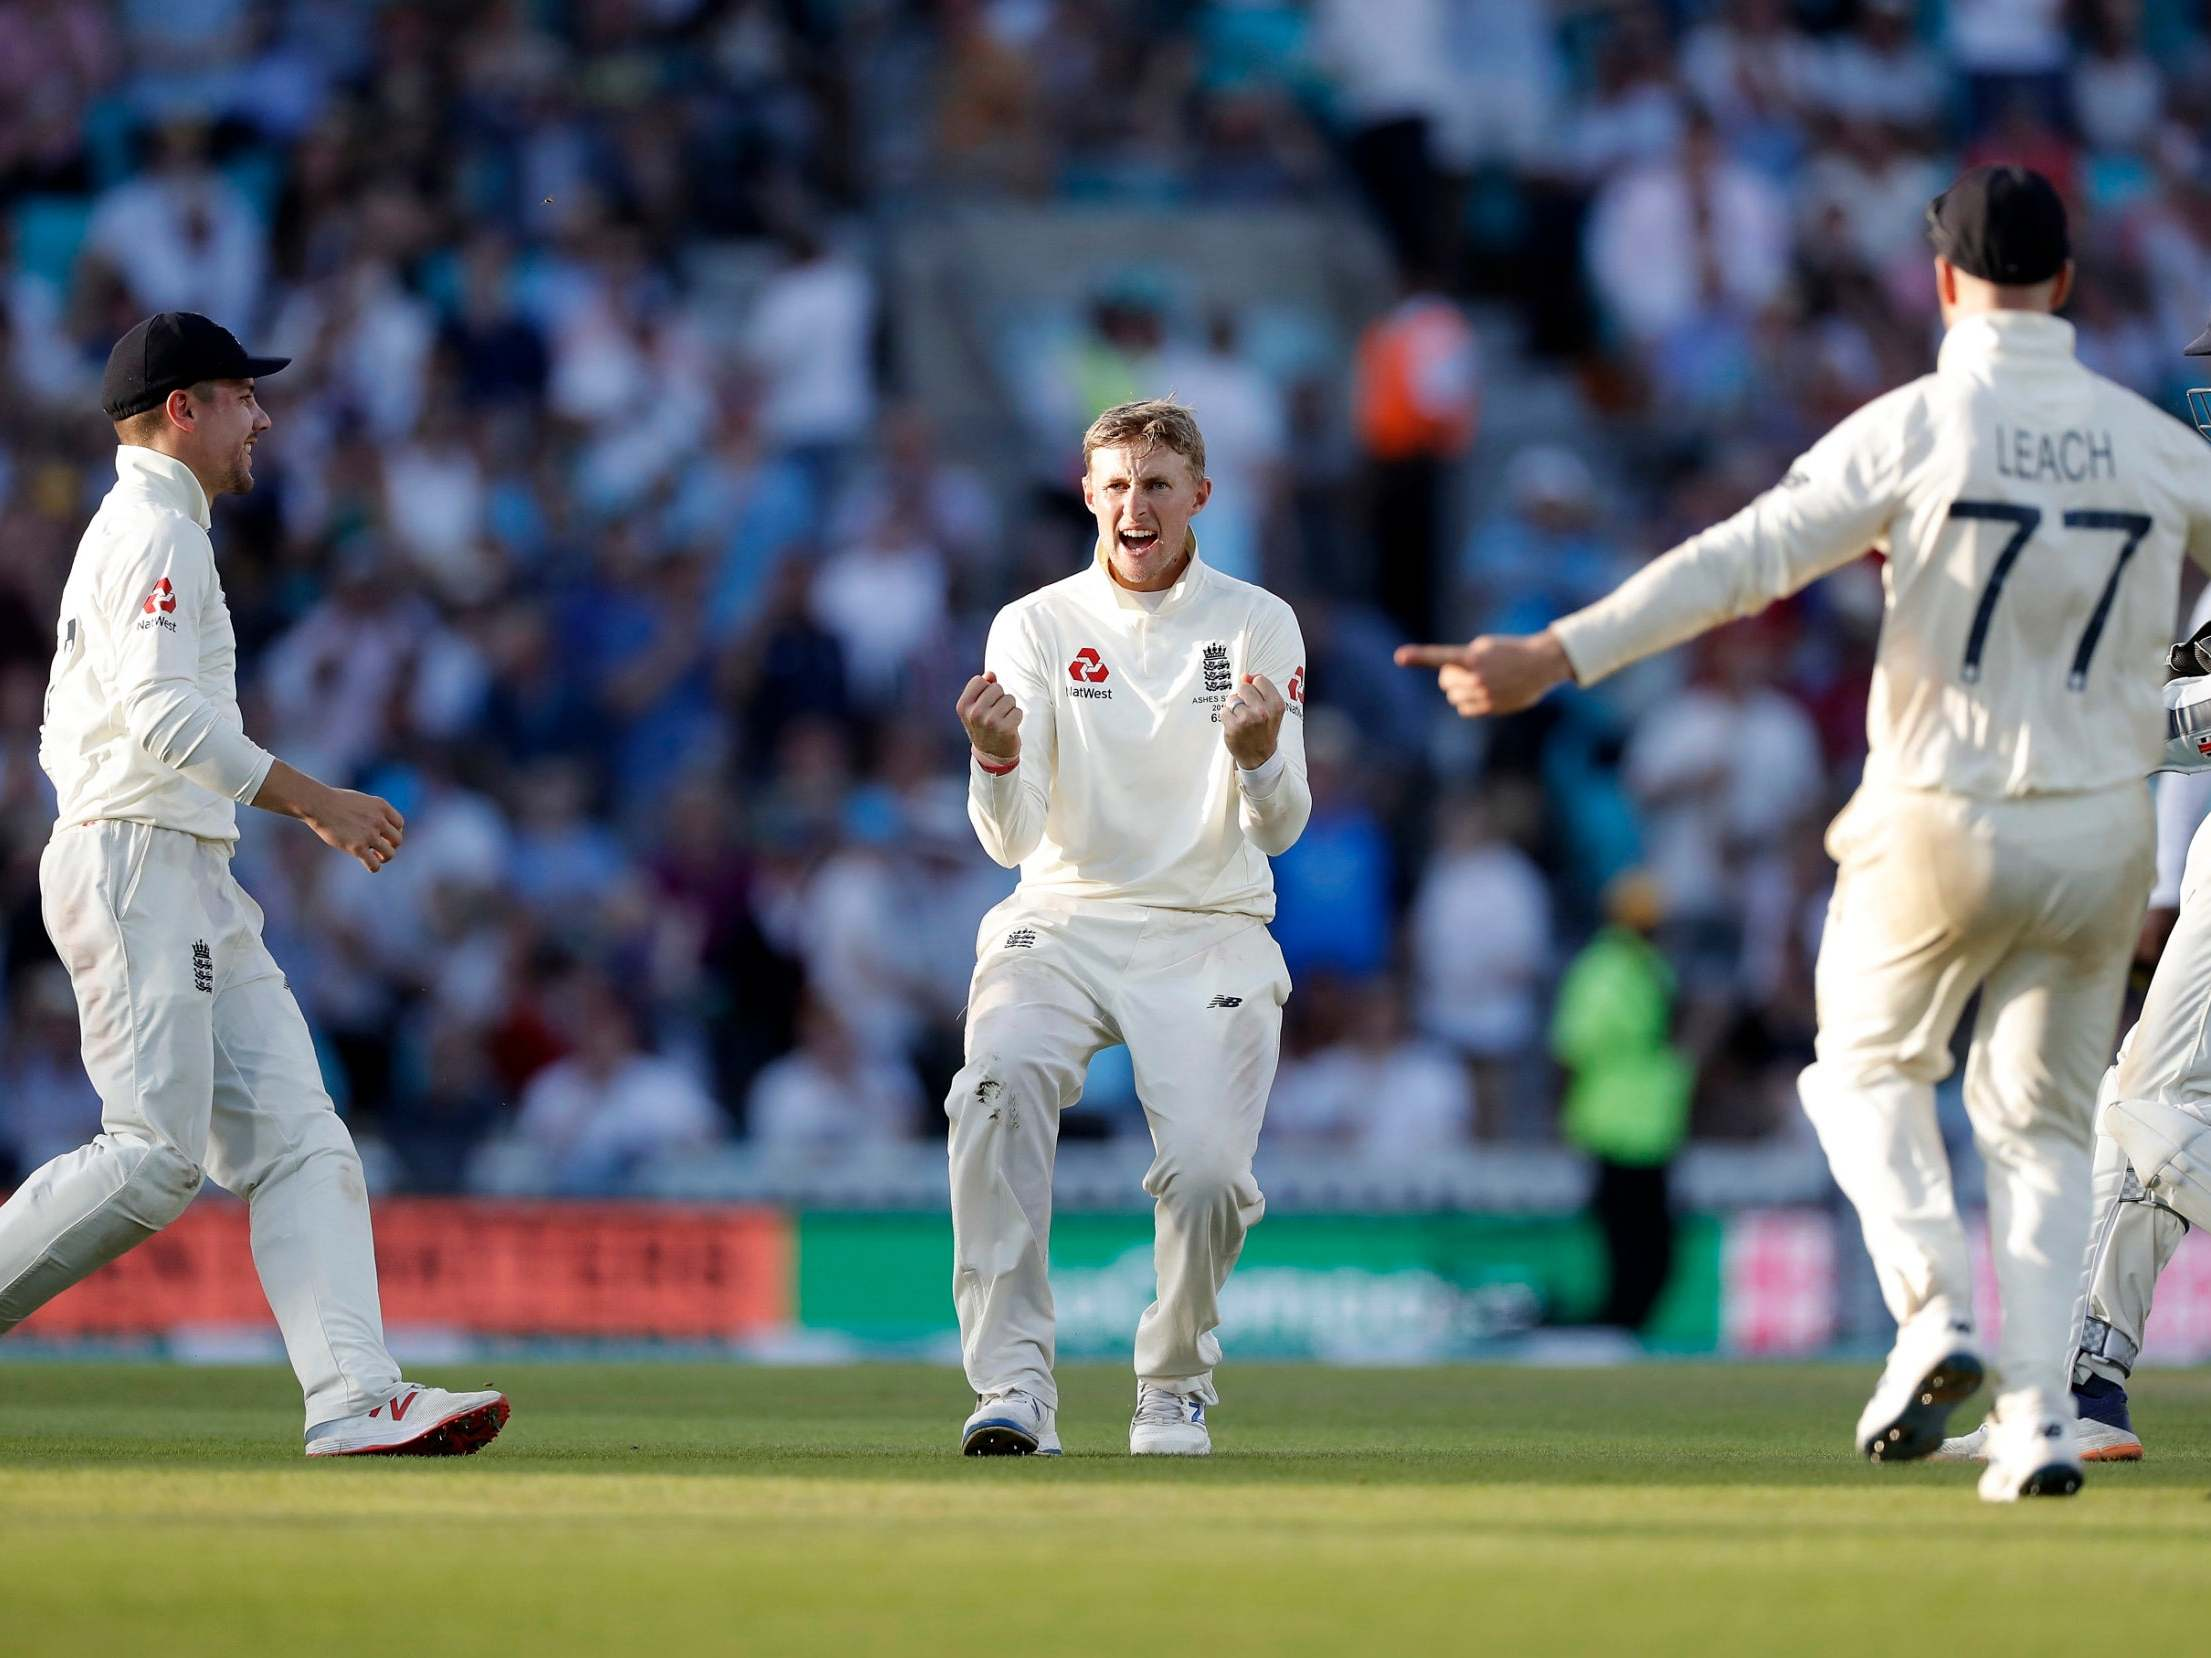 Ashes 2019 LIVE: England defy Matthew Wade resistance to wrap up victory and draw series 2-2